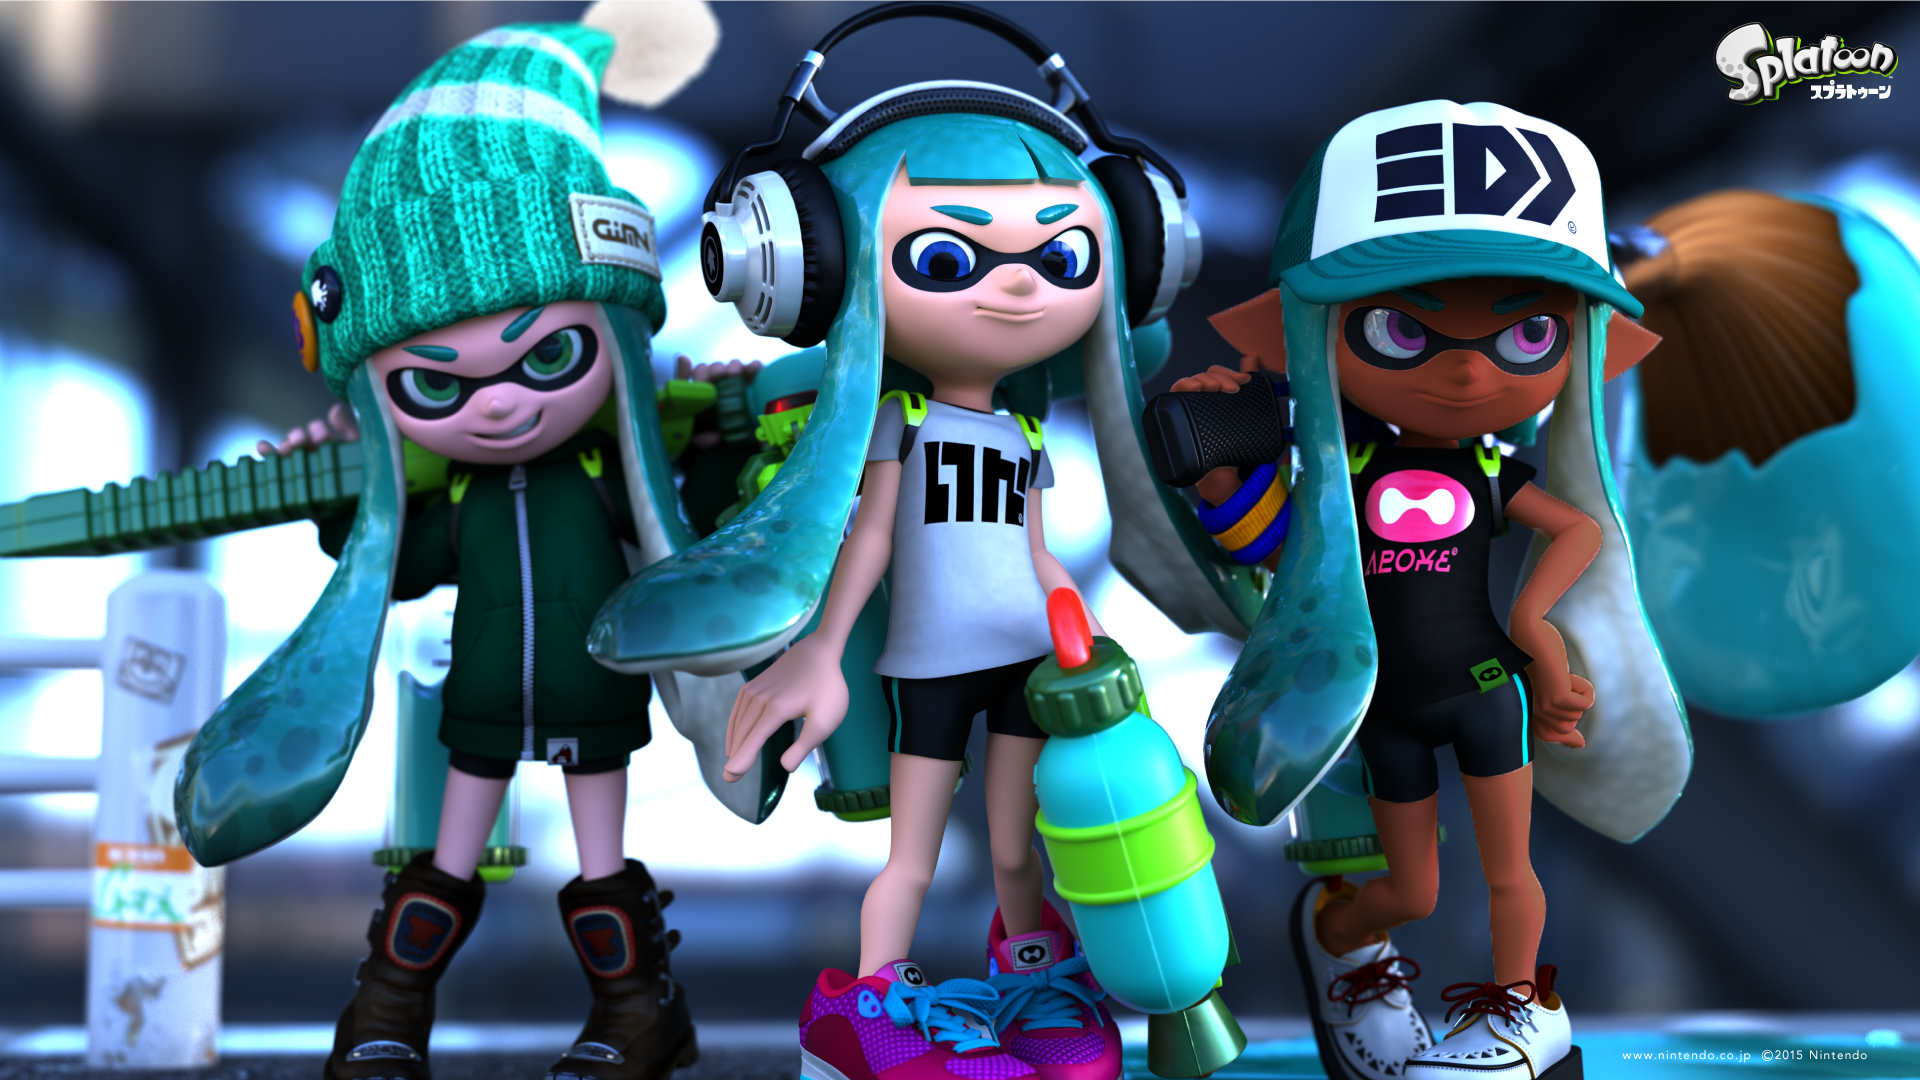 Co color by number girls -  Whitehawkereborn Splatoon Girls Wallpaper Skin Color Corrected V1 0 By Whitehawkereborn